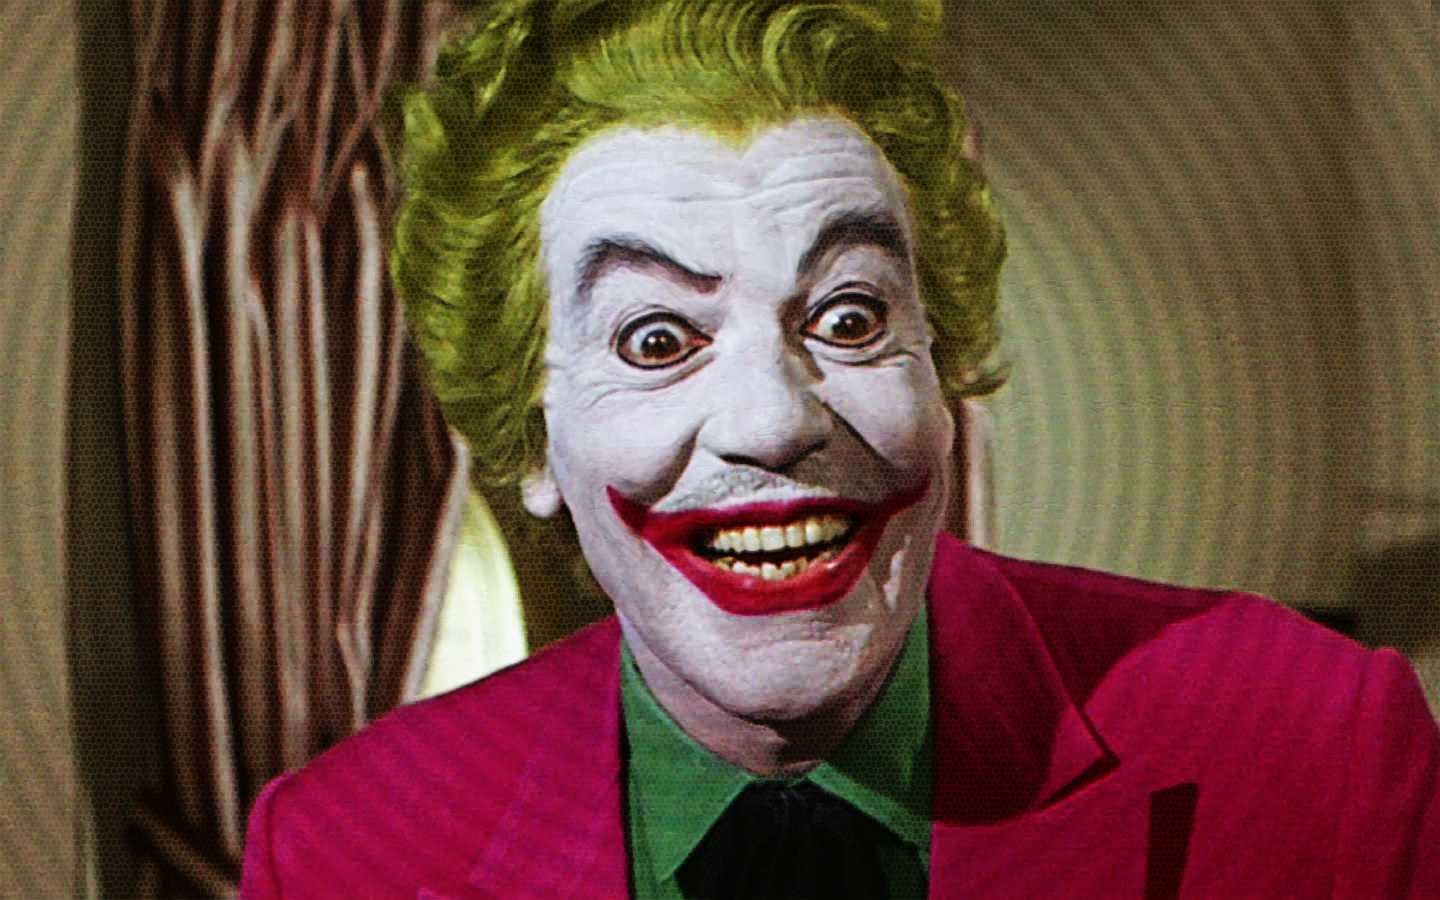 the-joker-by-cesar-romero-by-w-e-s-d47f7v8-114790-133403